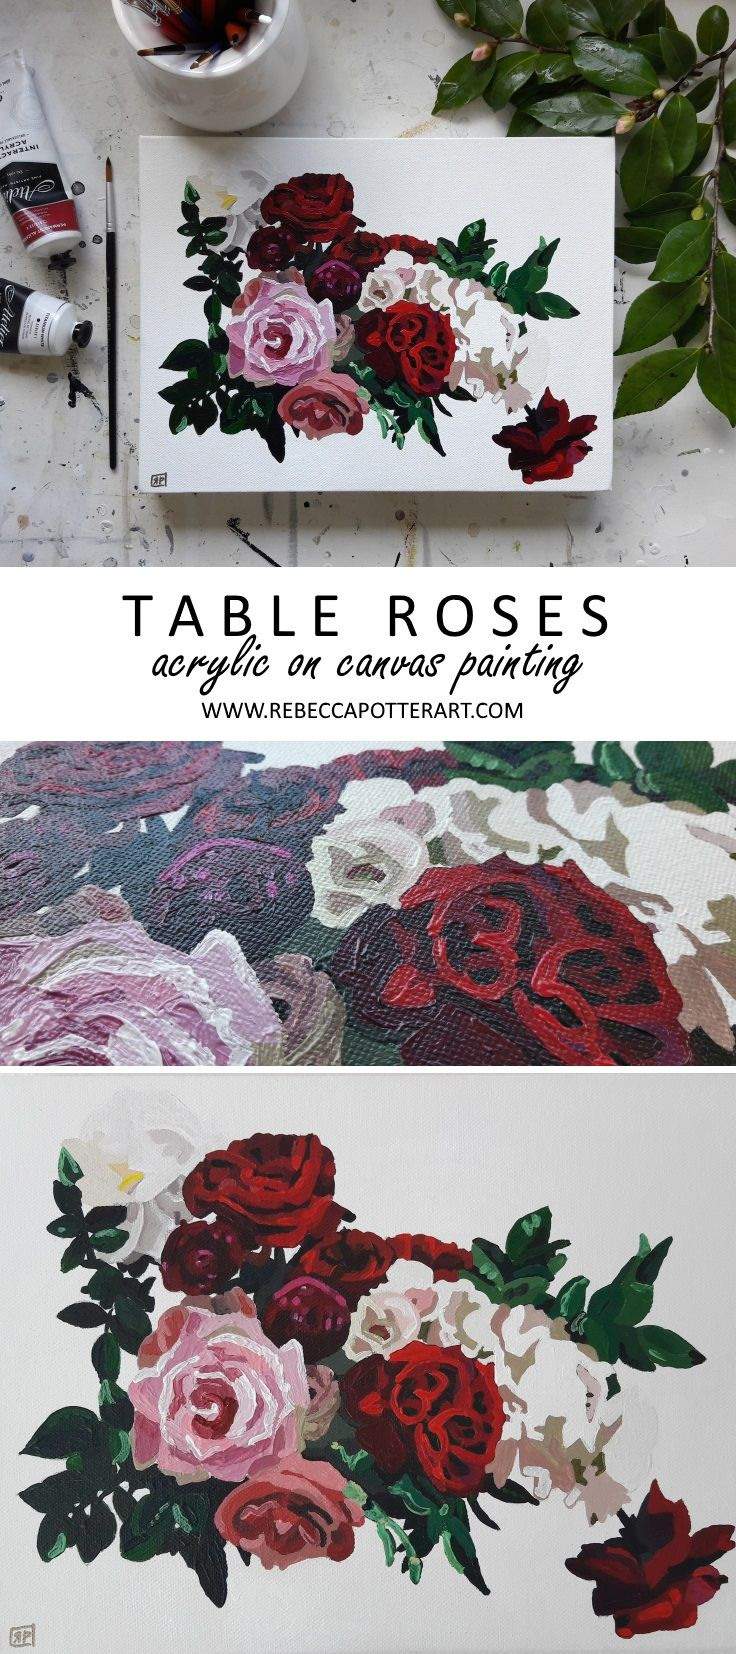 Table Roses Floral Painting. Acrylic on Canvas painting 9 x 12 by Rebecca Potter. June 2017